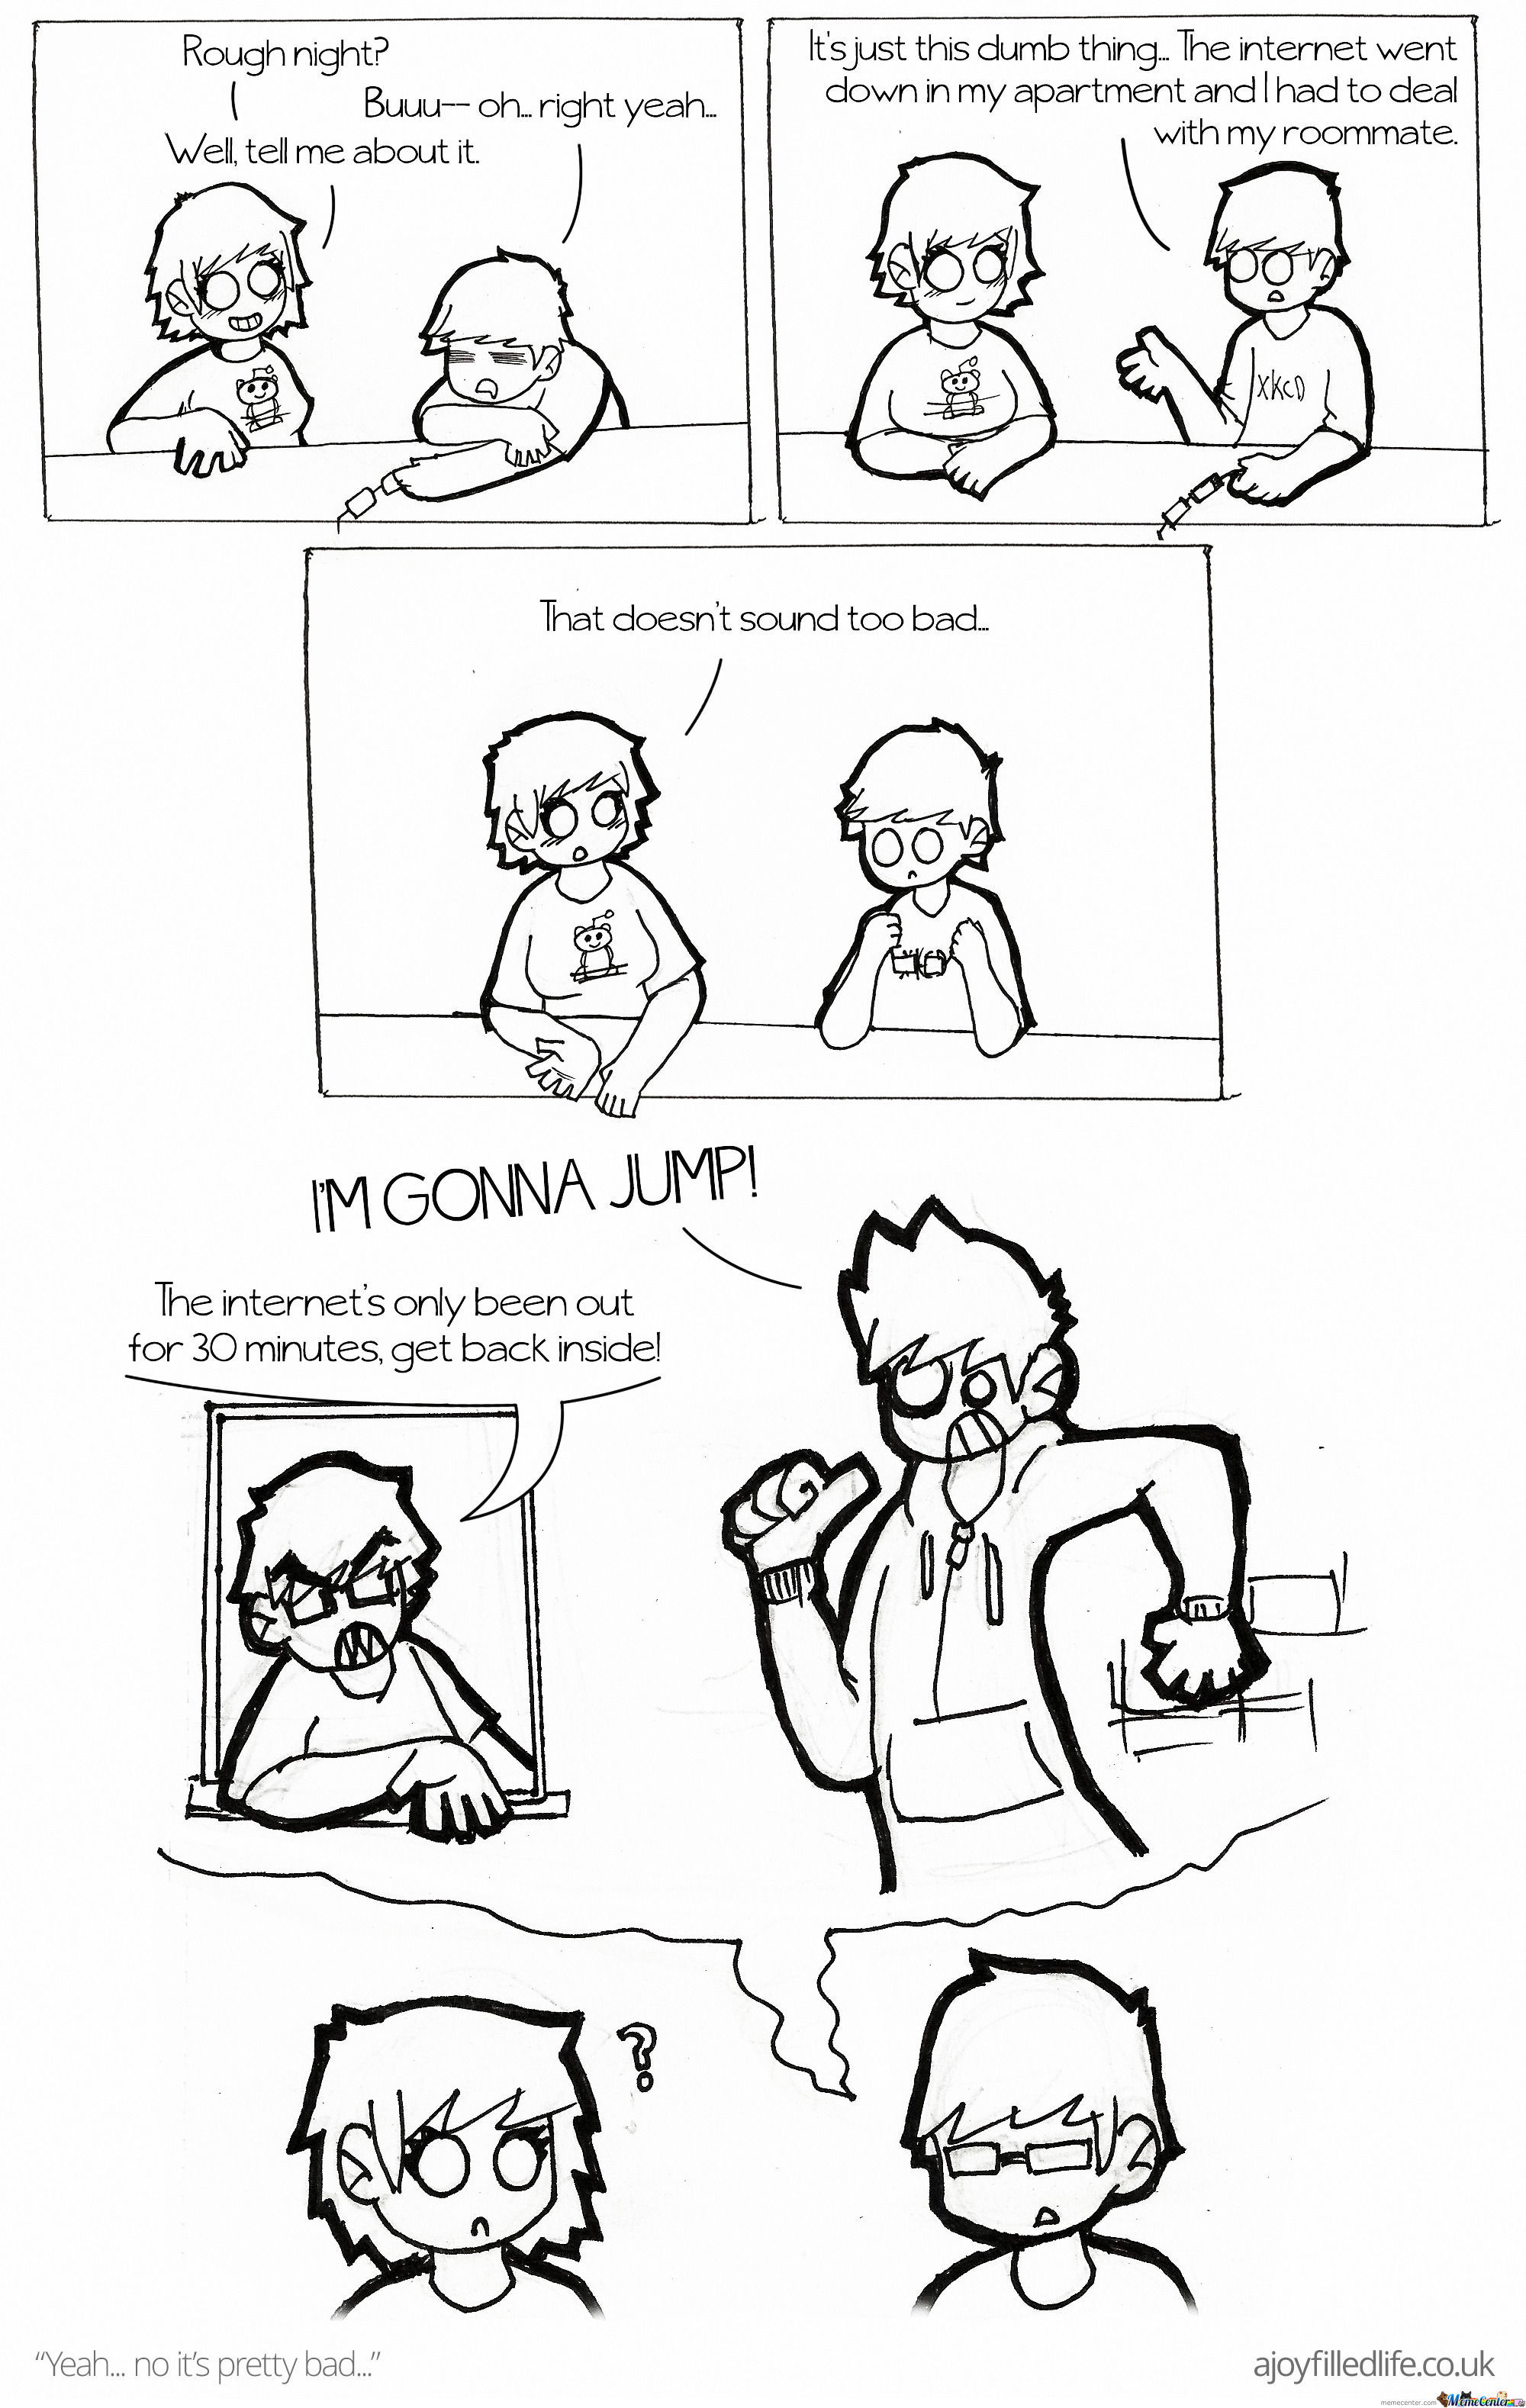 Connection Timed Out -Part 2 by ajoyfilledlife - Meme Center